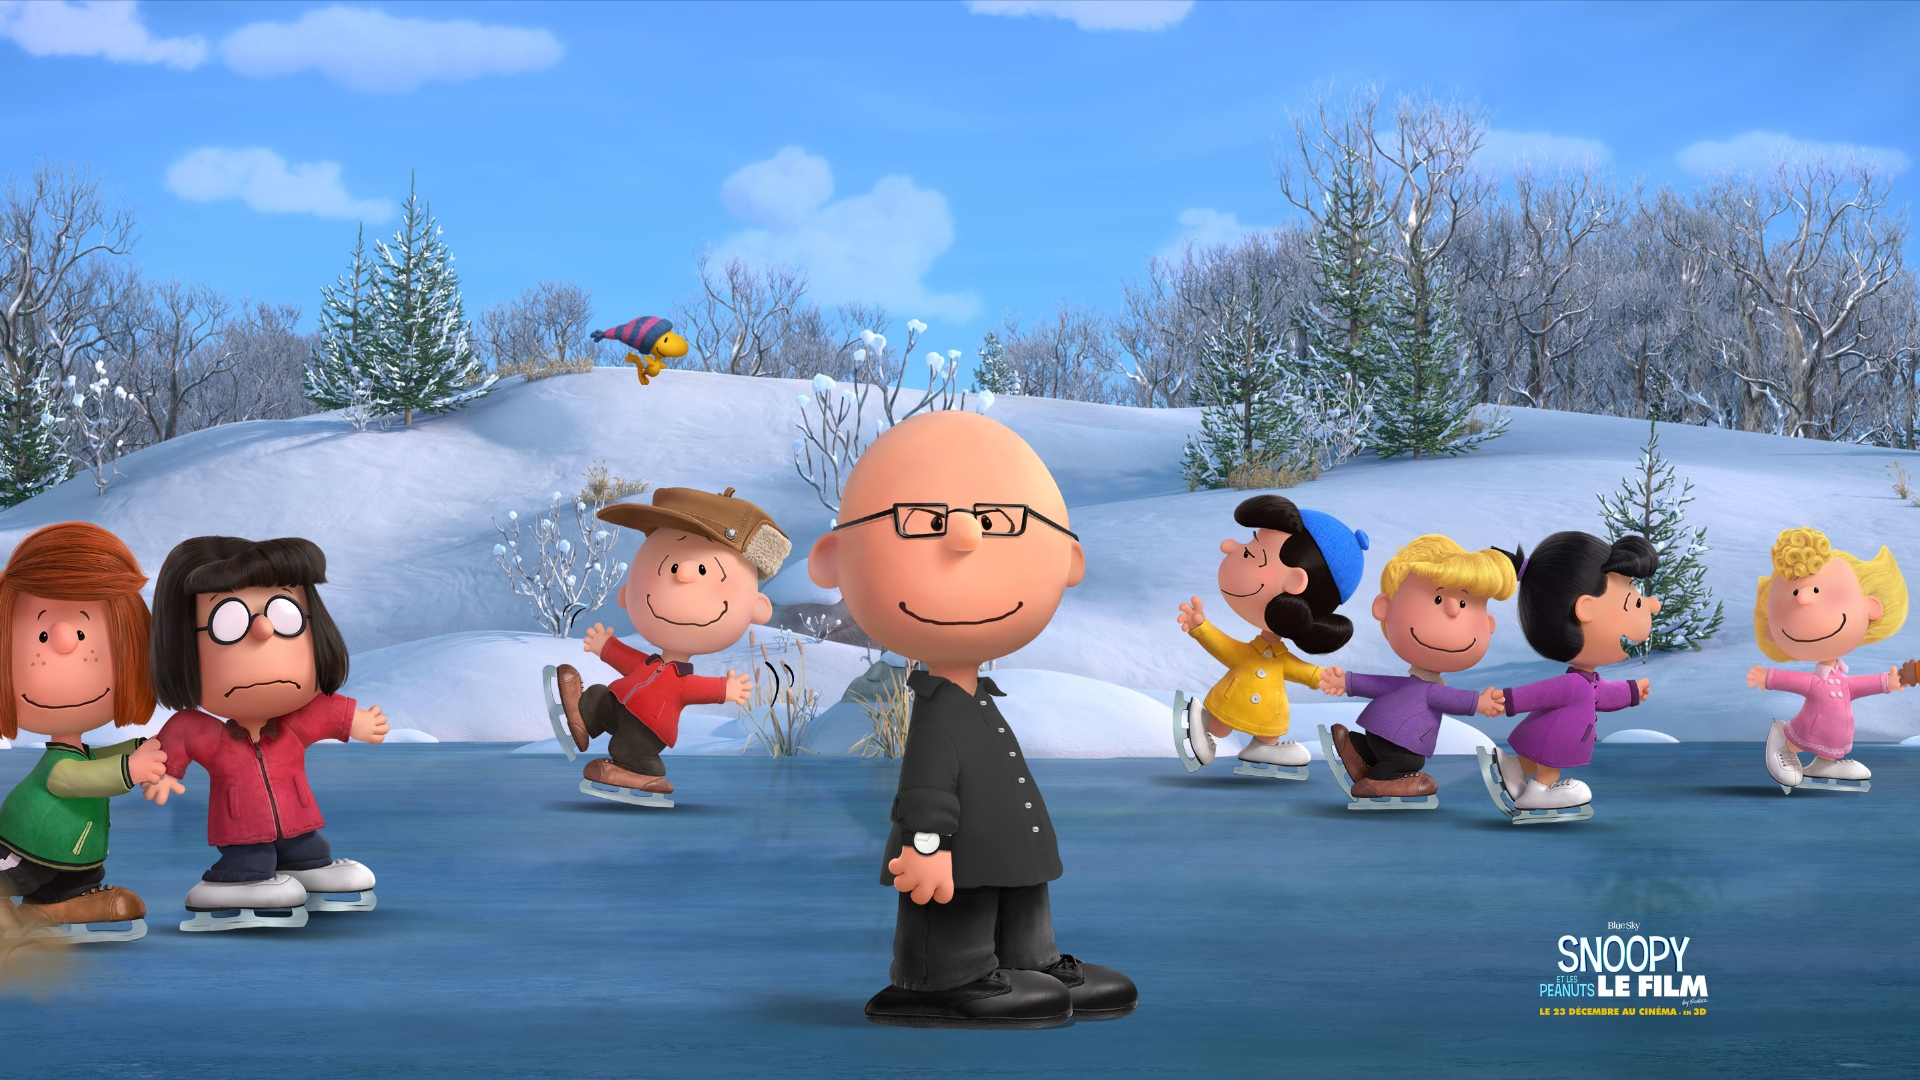 20th century fox - peanutize me-wcie10